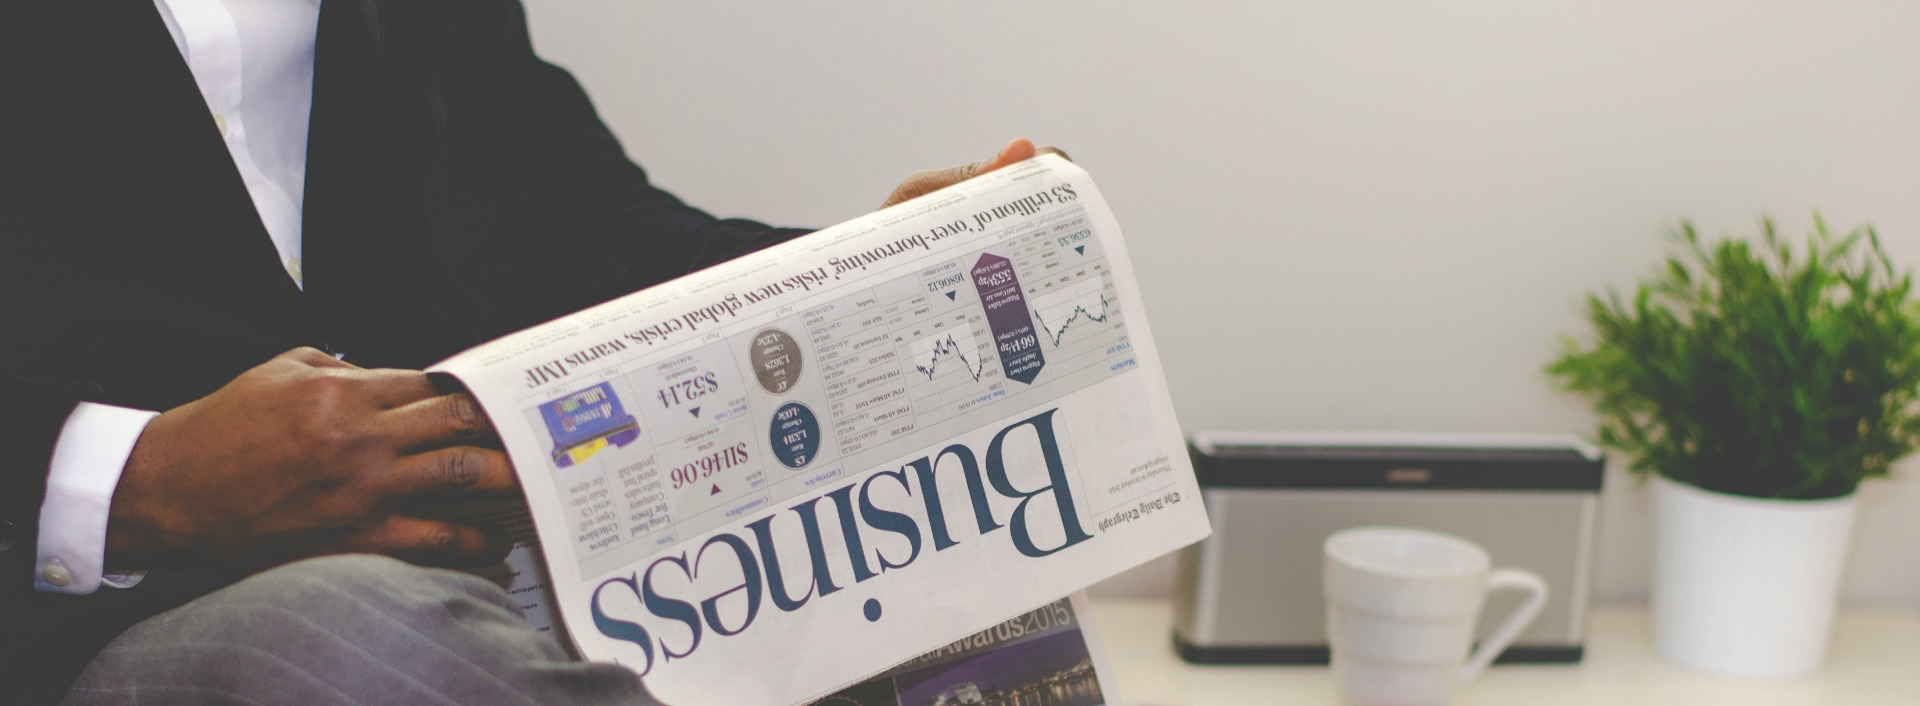 A businessman reading the business section of the newspaper to prepare for his English conversation interview.